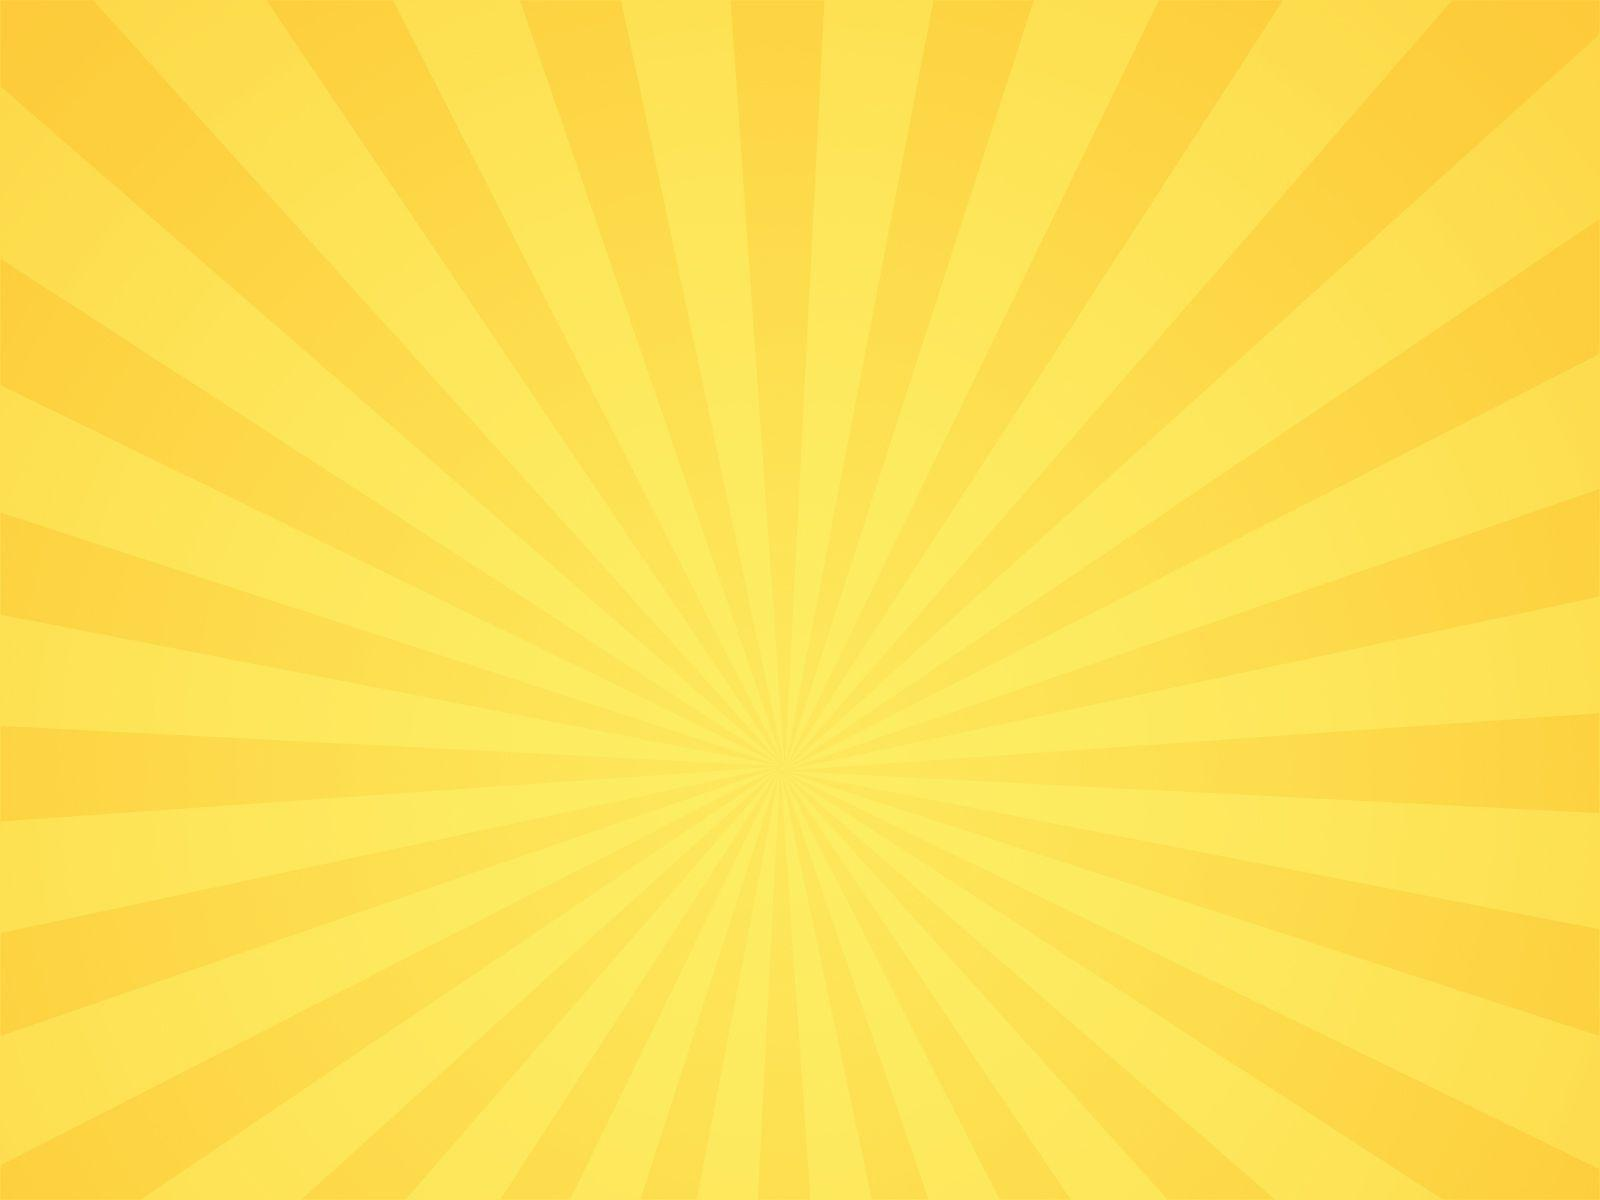 Wallpapers For Soft Yellow Backgrounds